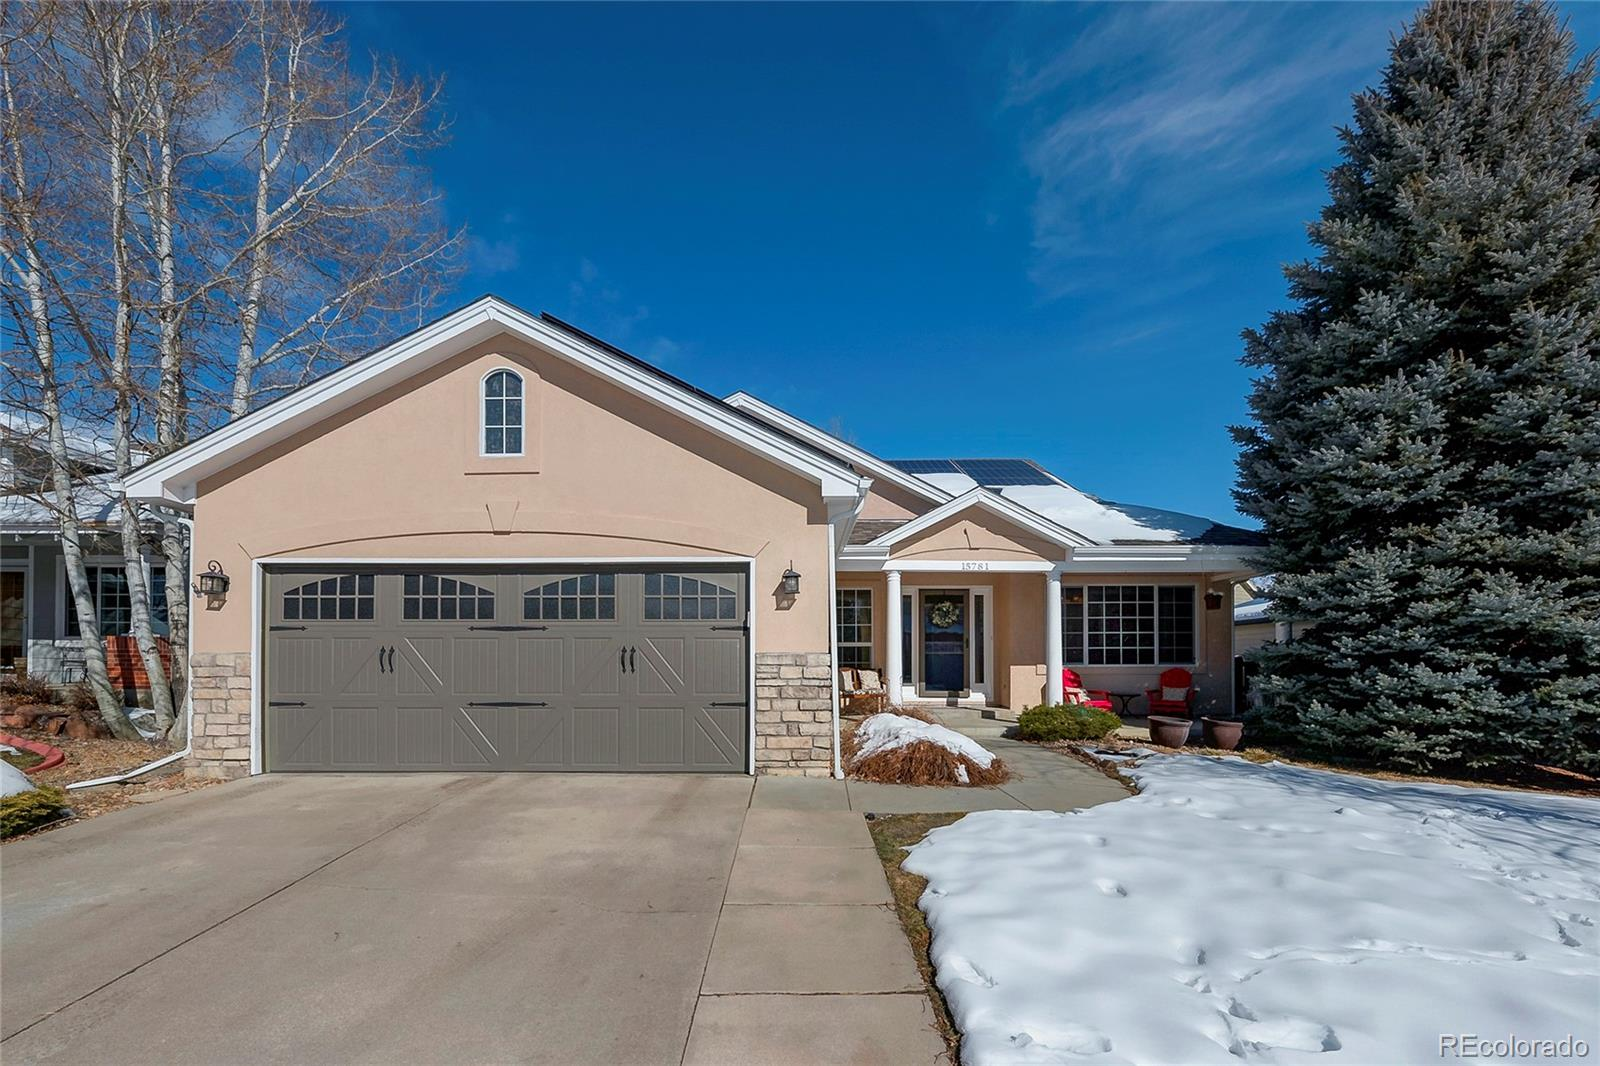 MLS# 4951528 - 1 - 15781 W 66th Place, Arvada, CO 80007